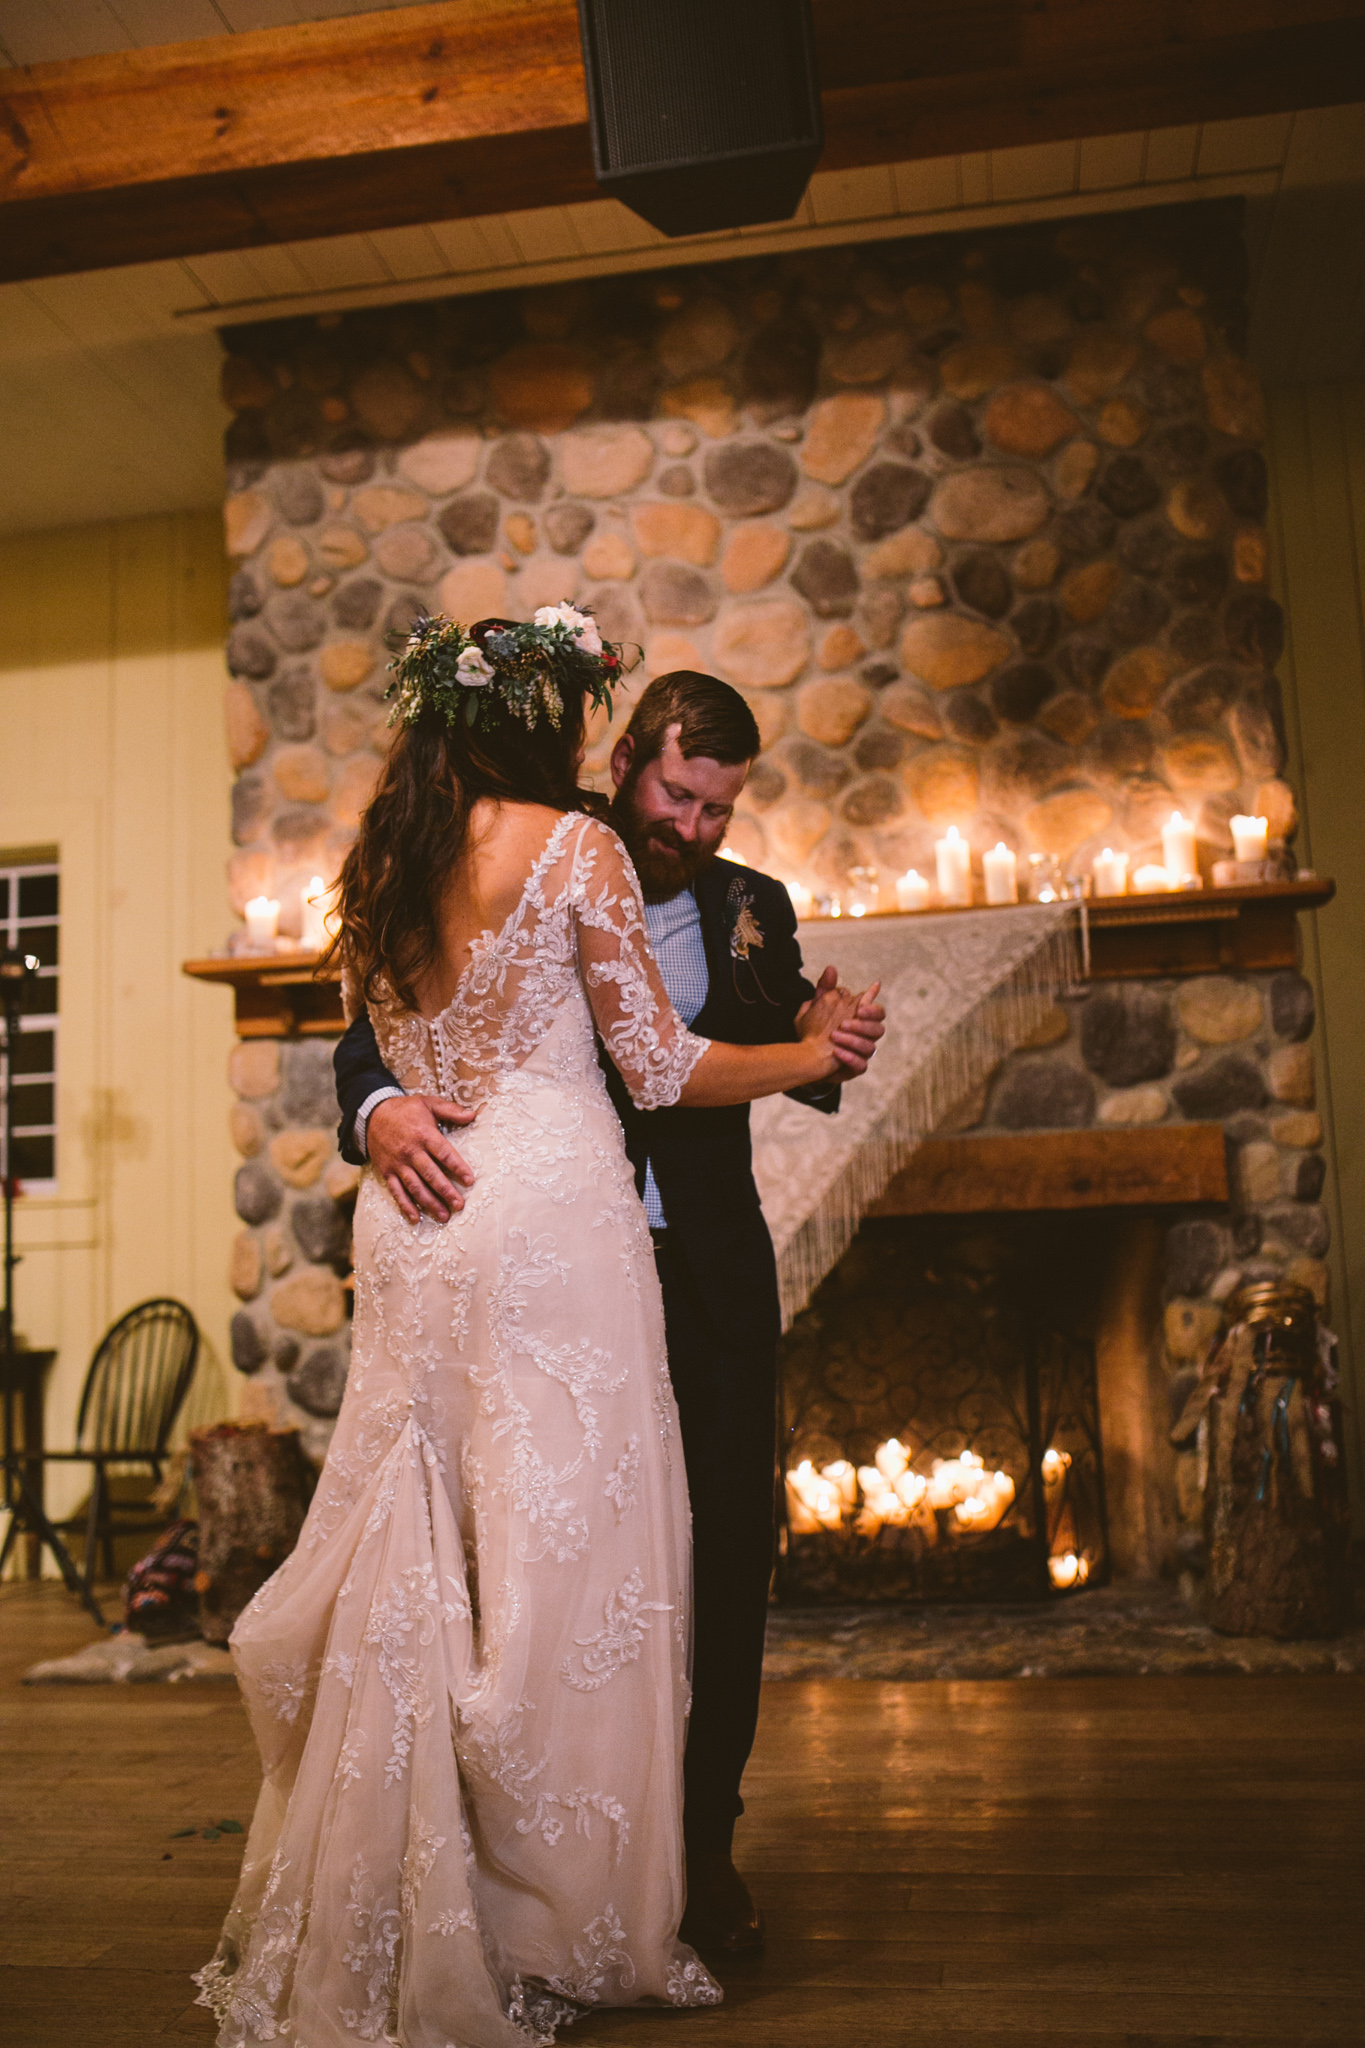 jen and wes-679.jpg